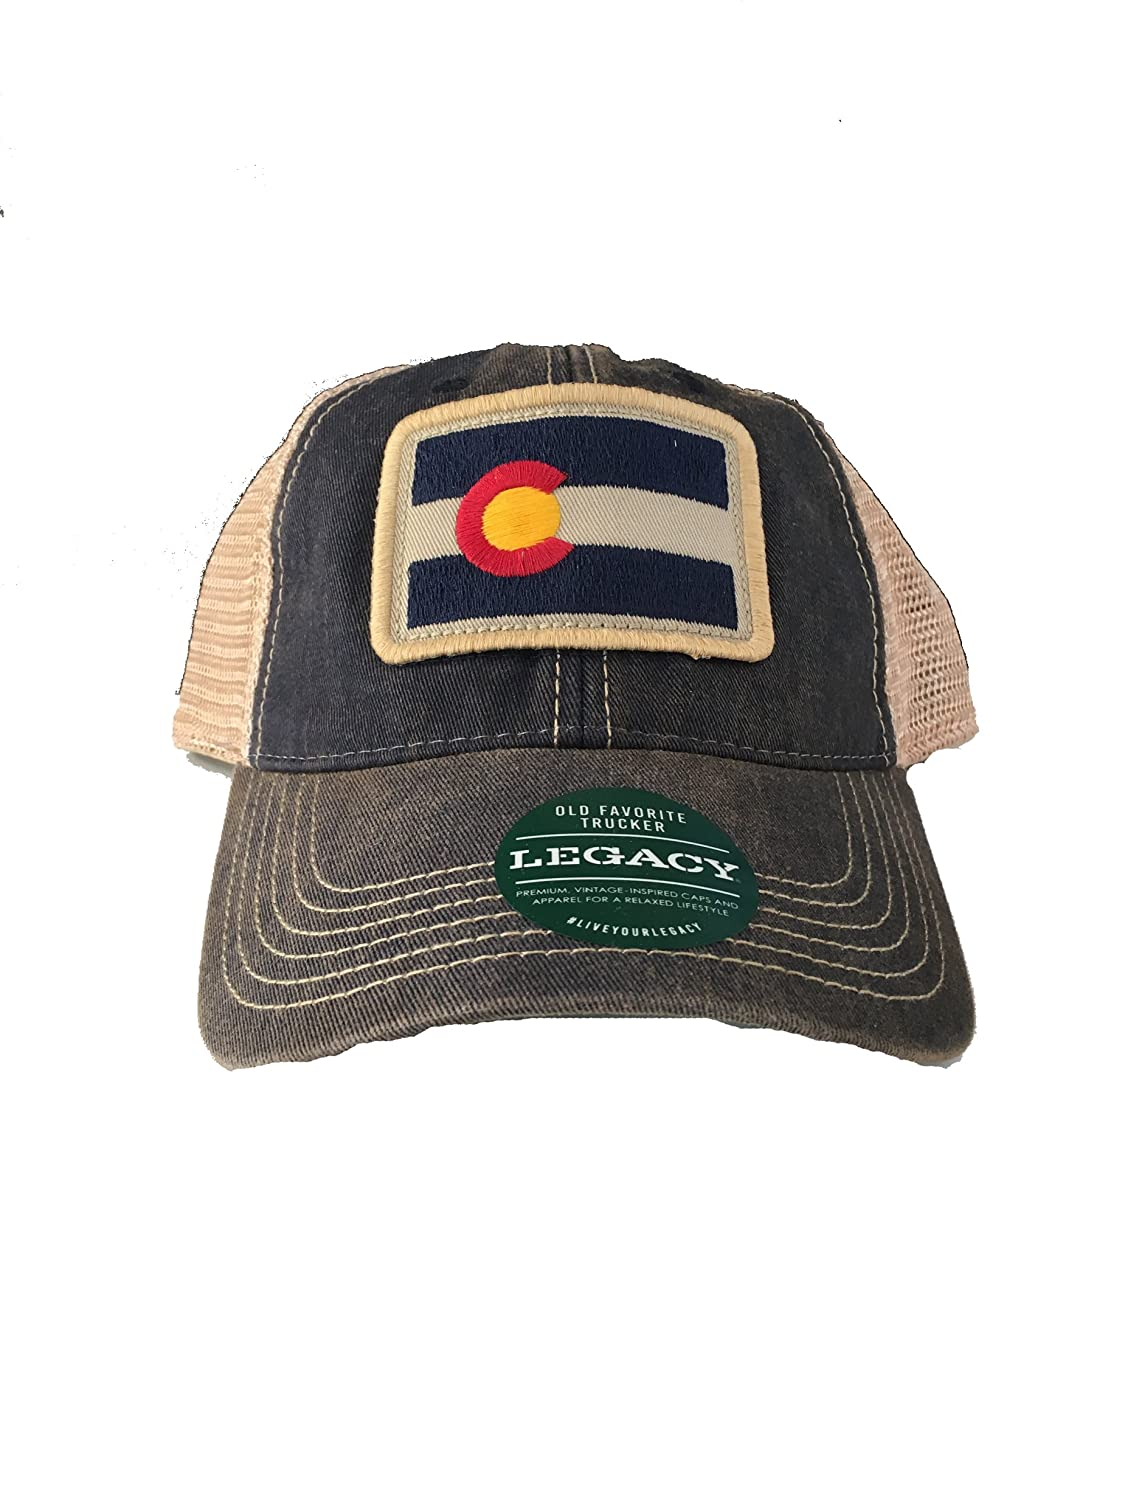 Legacy athletic rectangle colorado flag patch trucker cap at amazon mens  clothing store jpg 1125x1500 Legacy 9dbfd6f9d775